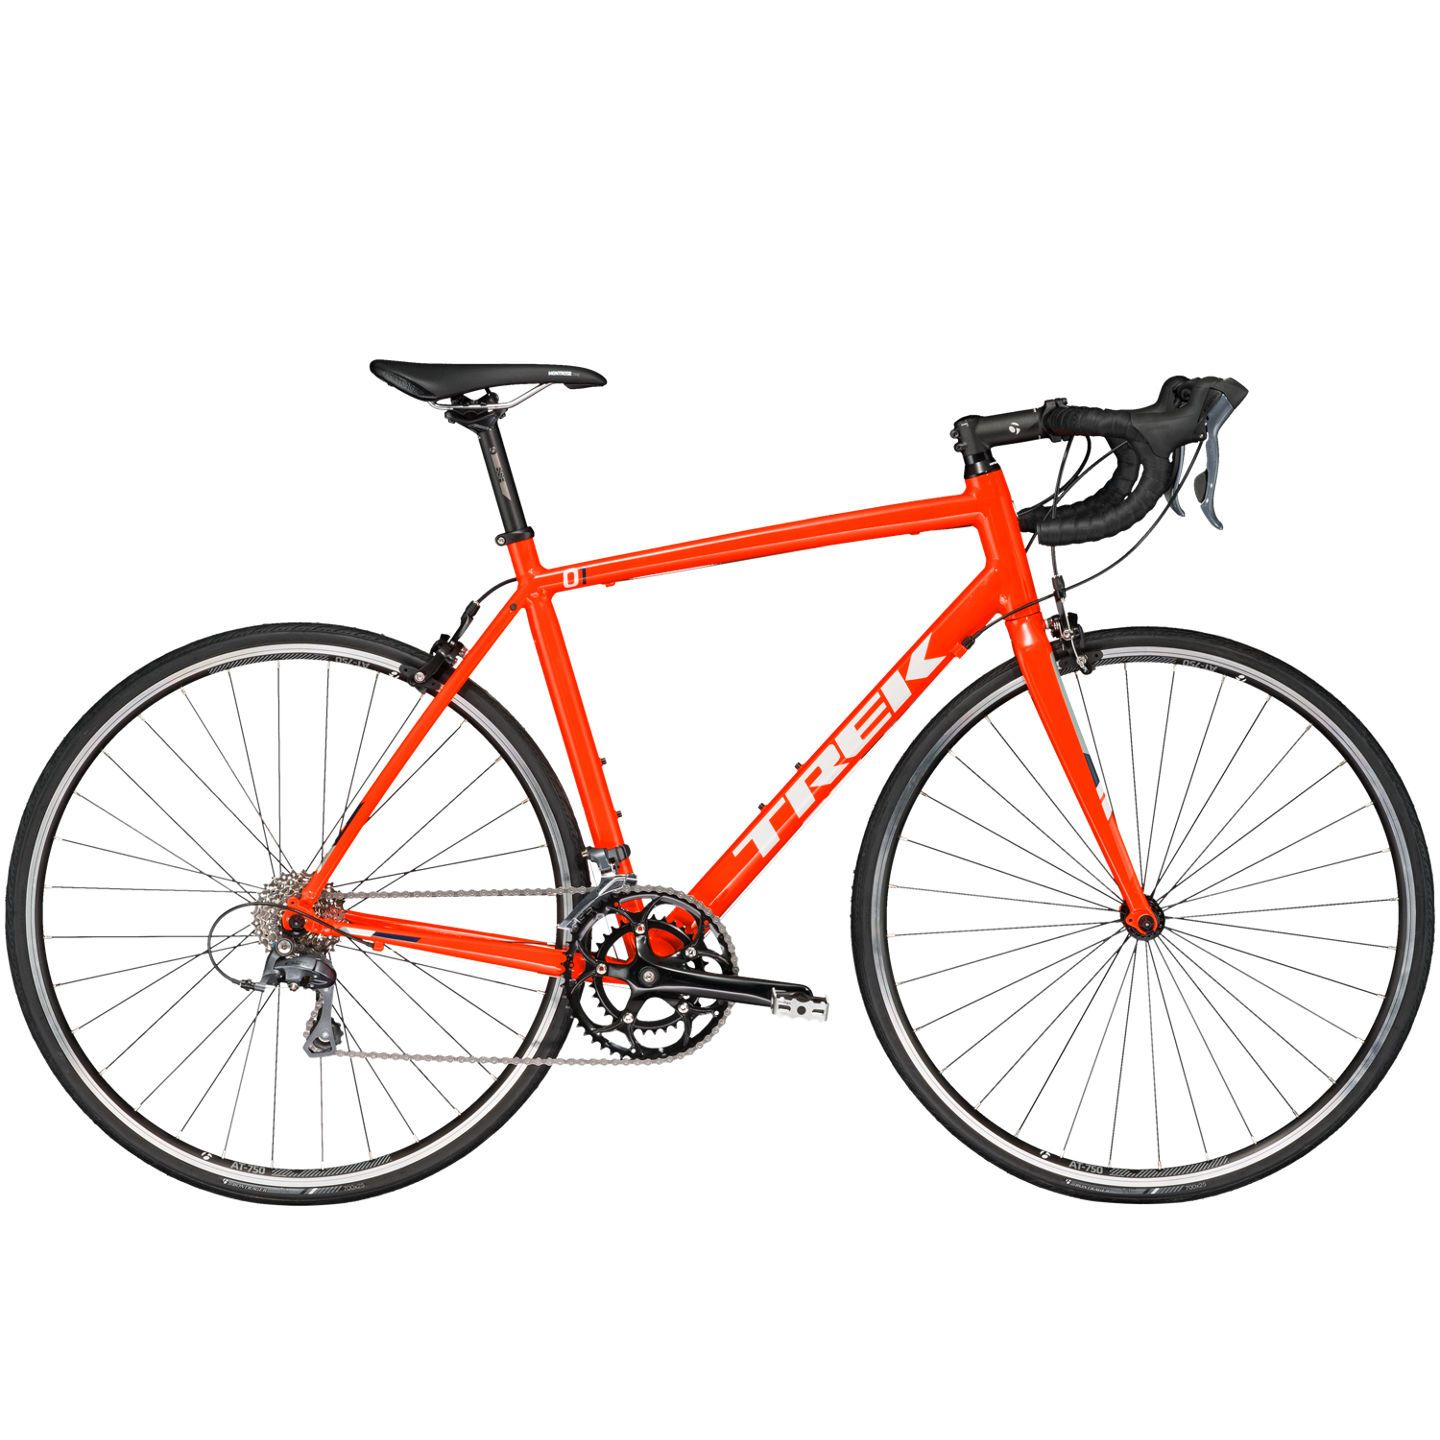 Vélo de route Trek 1.1 C H2 Orange - 47 cm